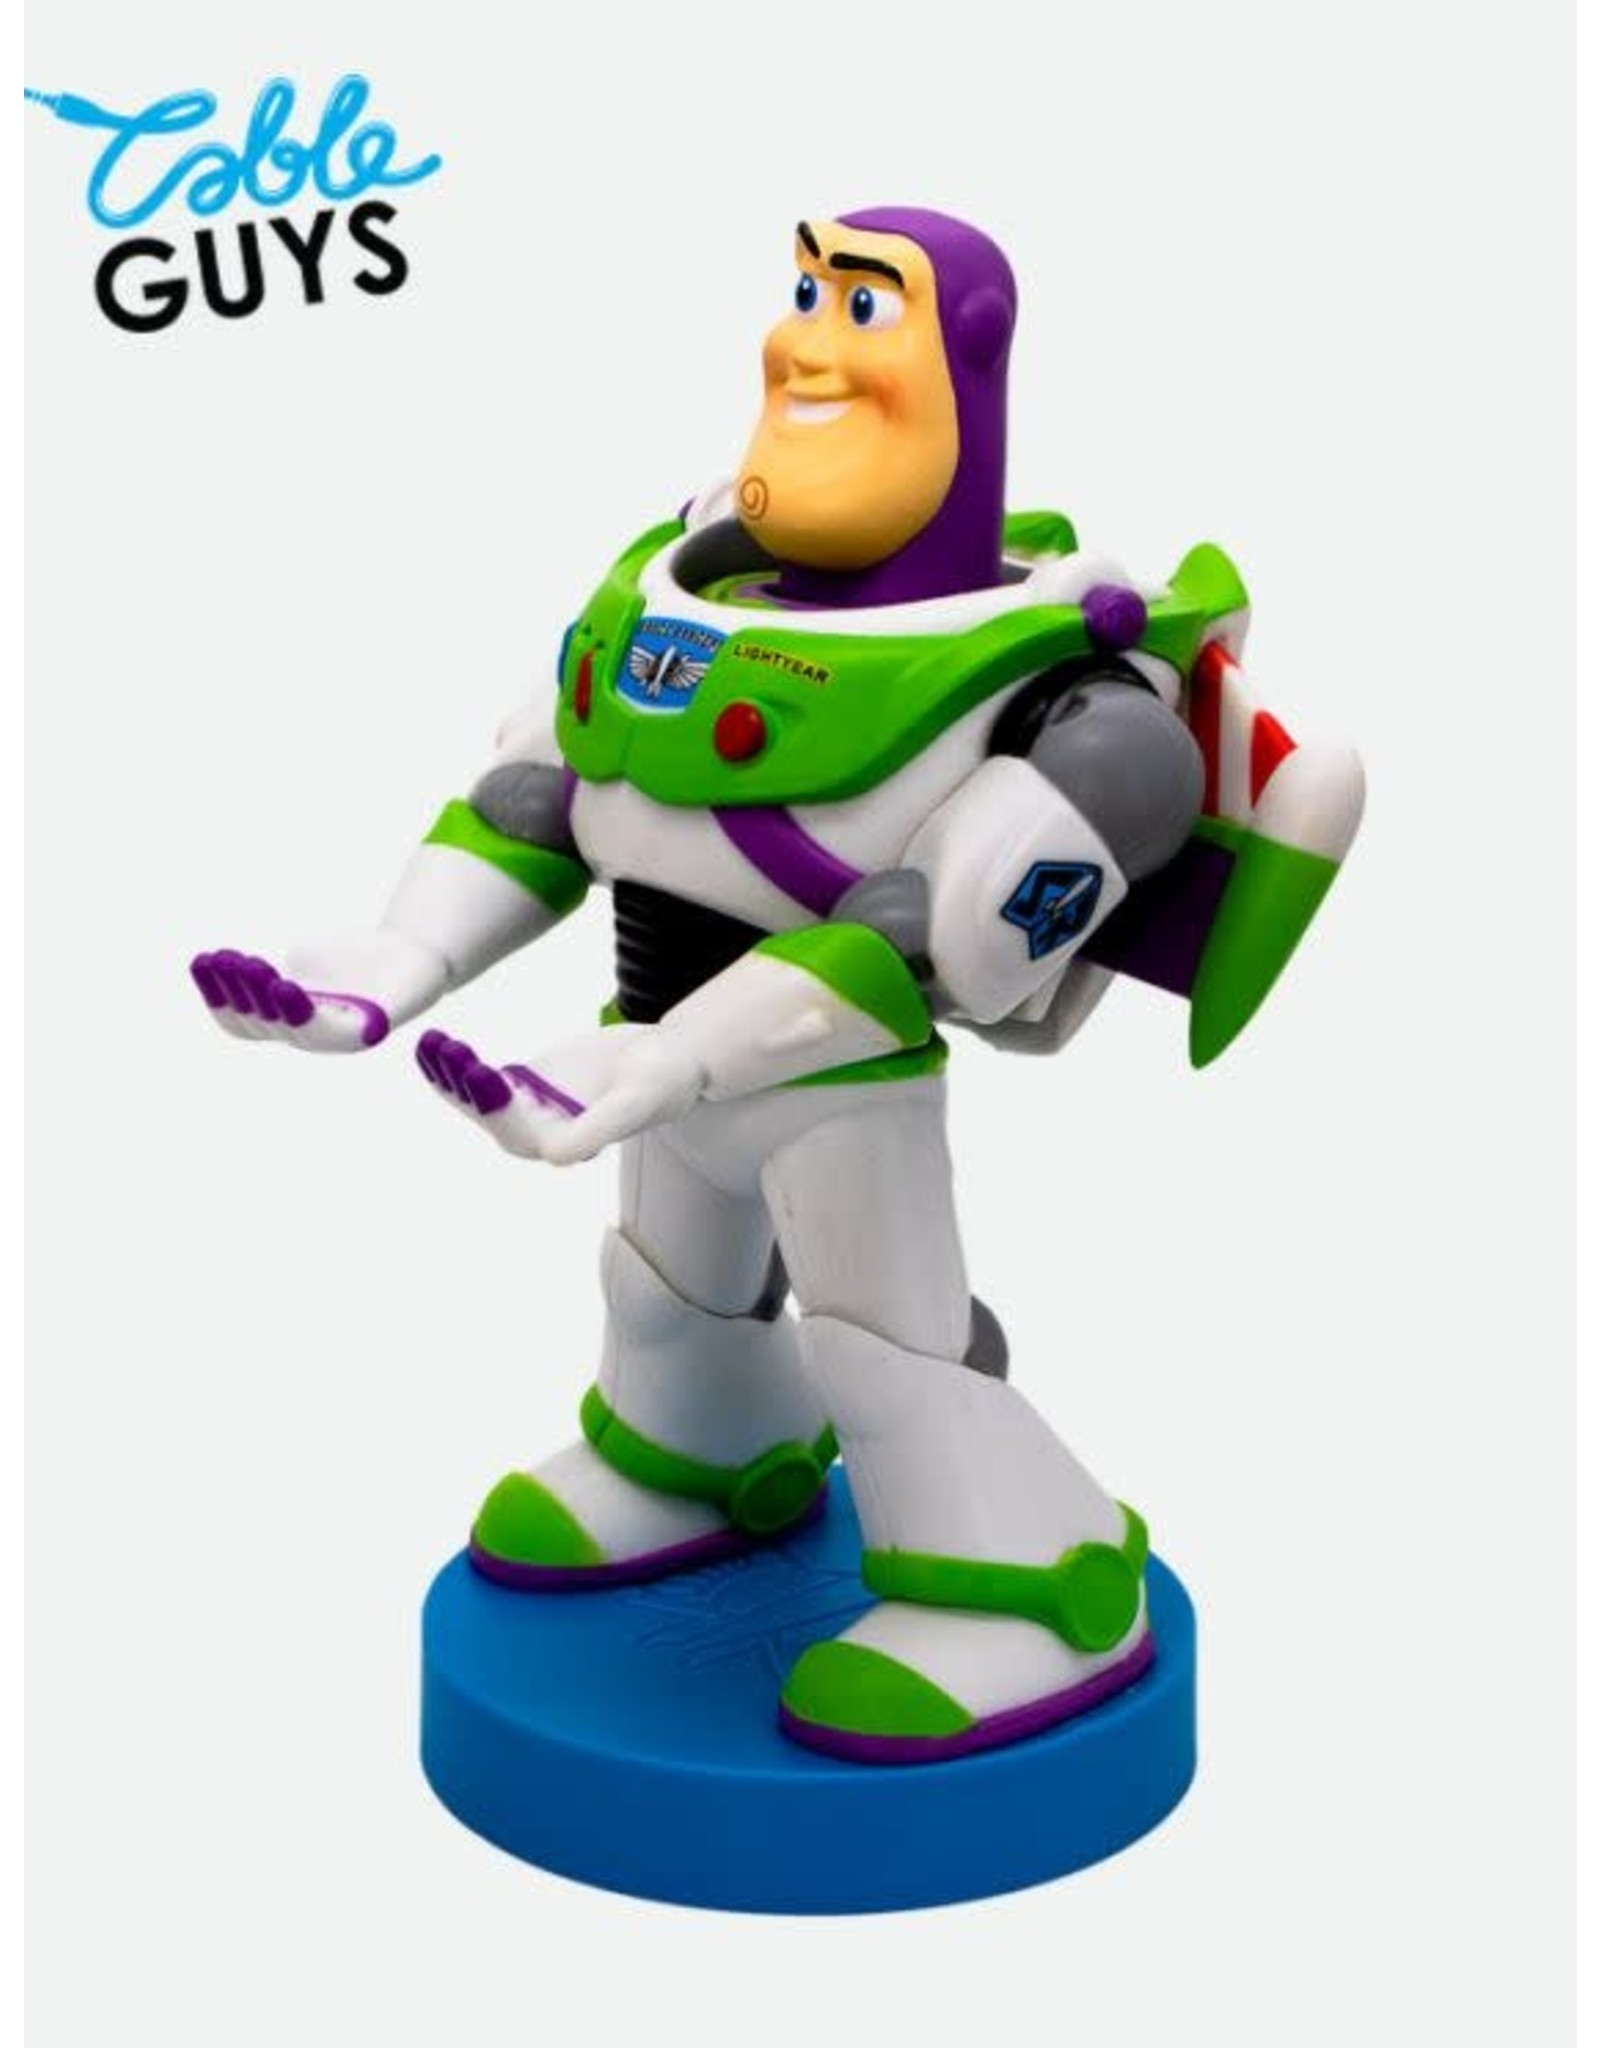 Exquisite Gaming TOY STORY Cable Guys Charging Holder 20cm - Buzz Lightyear